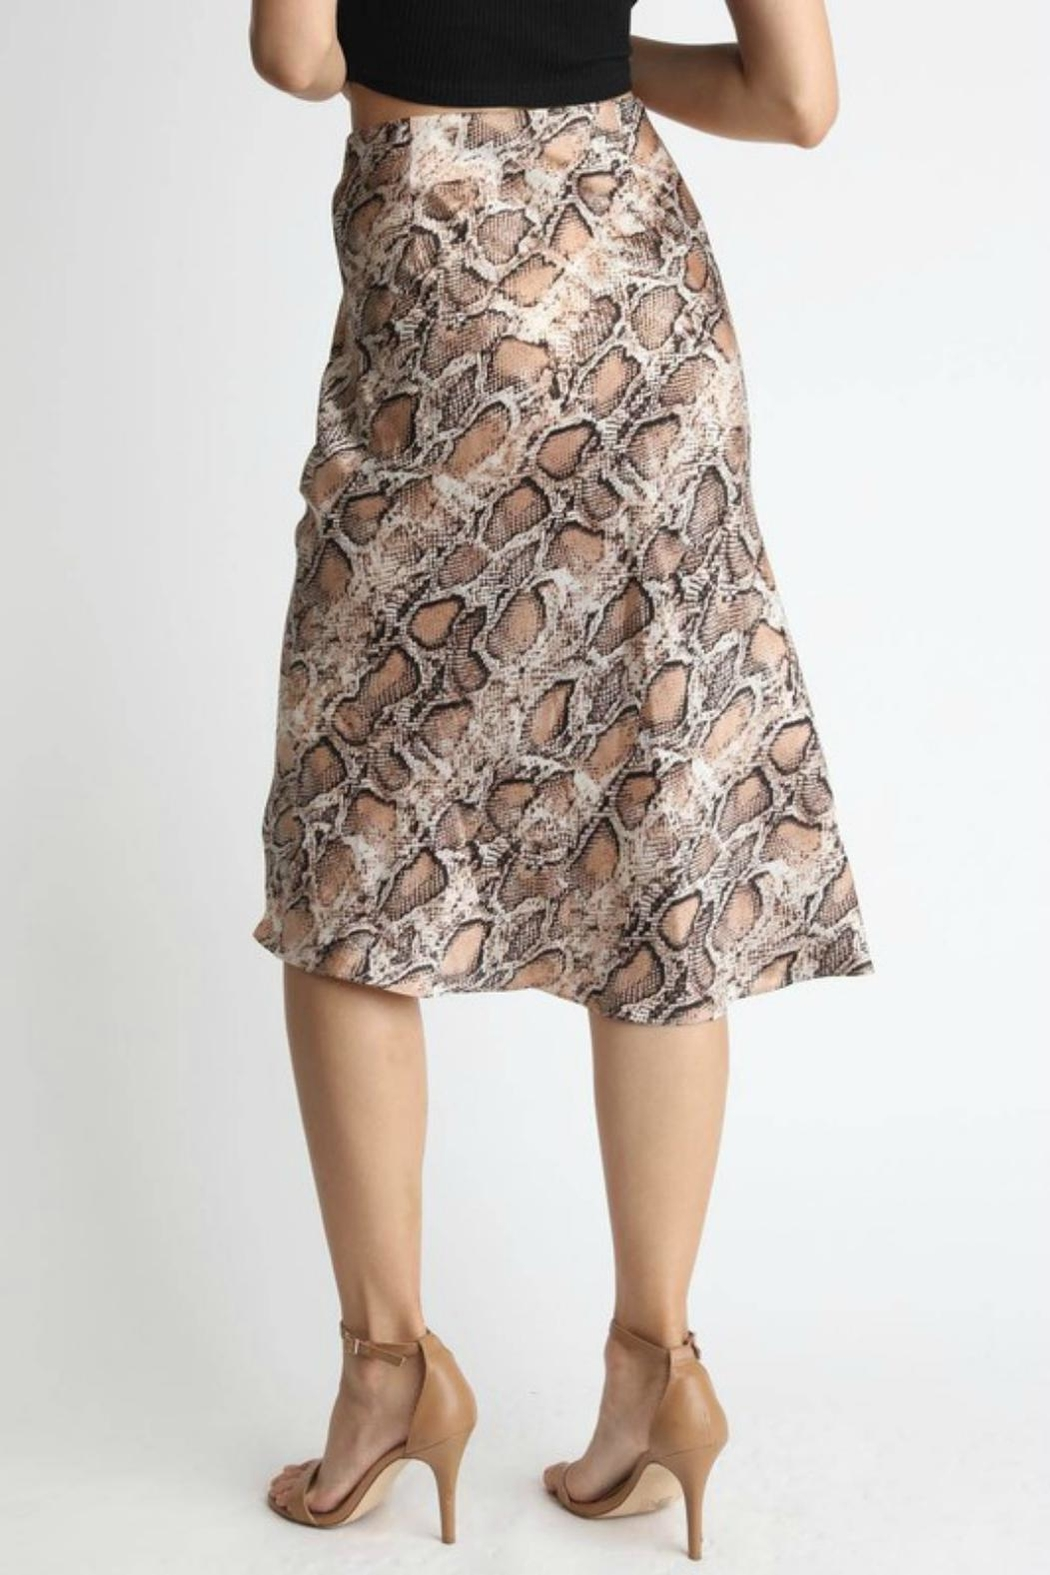 Pretty Little Things Snakeskin Midi Skirt - Front Full Image